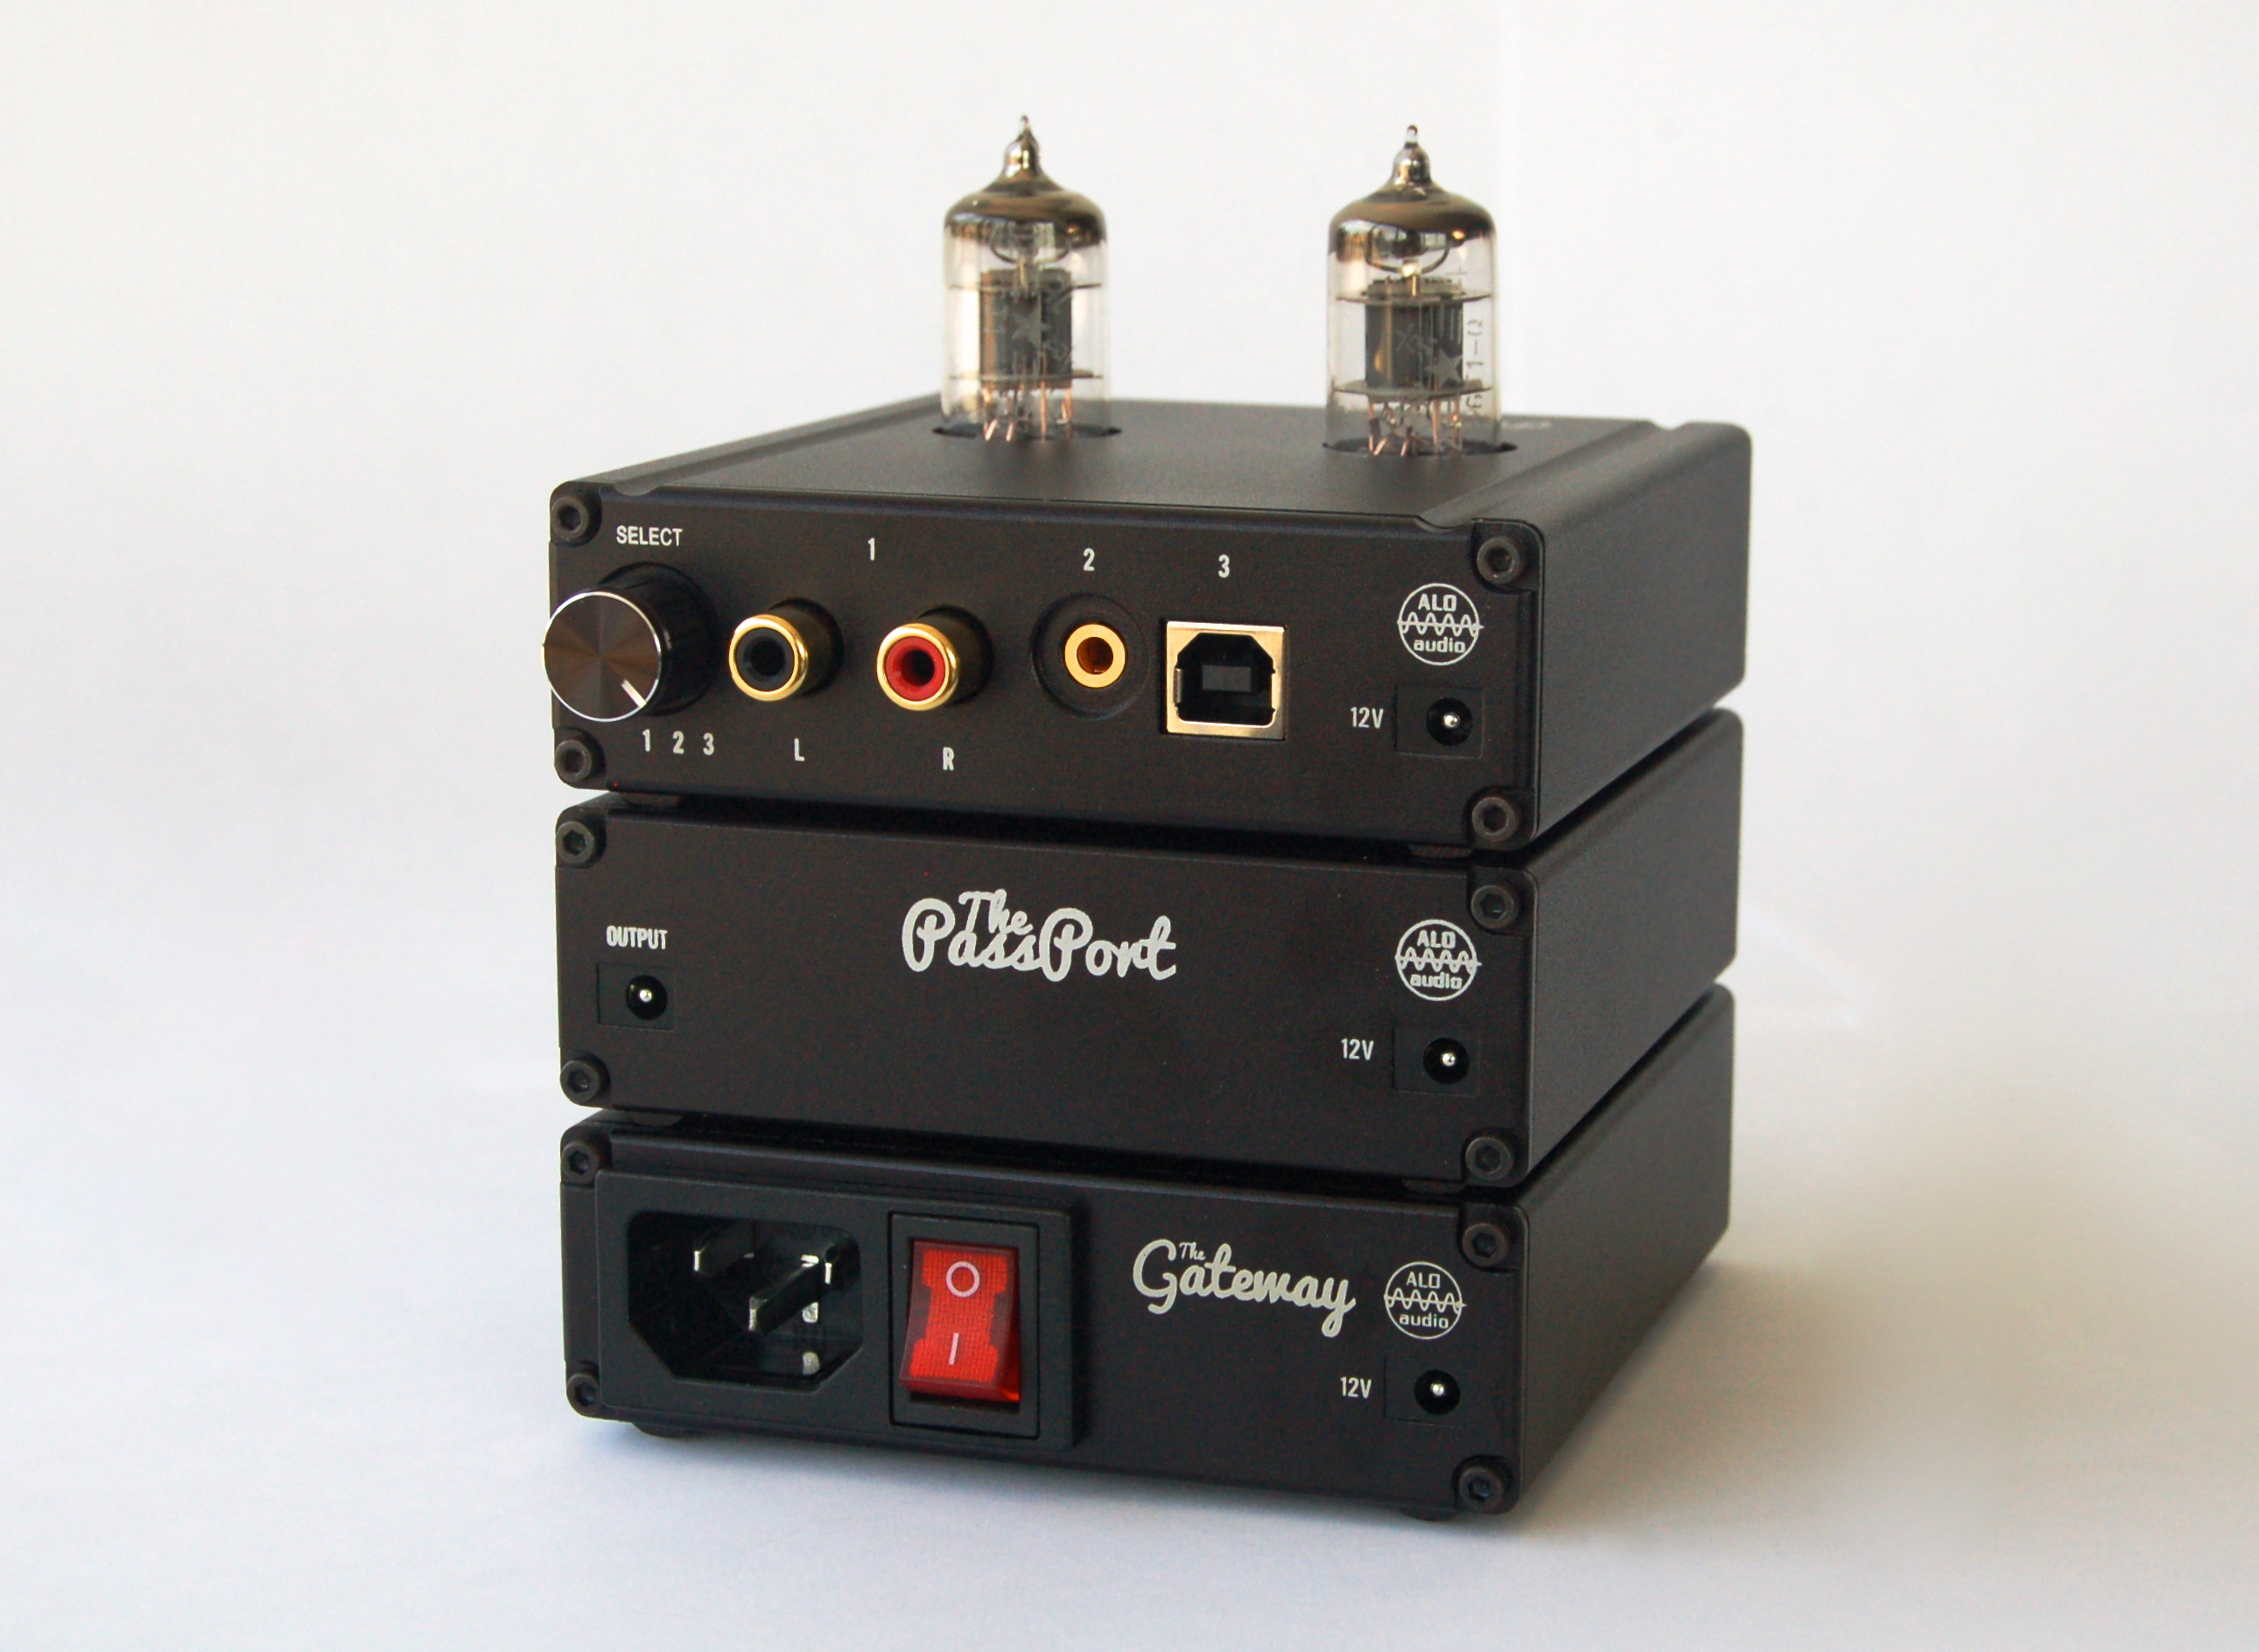 ALO Pan Am Headphone Tube Amplifier And USB DAC With Gateway And